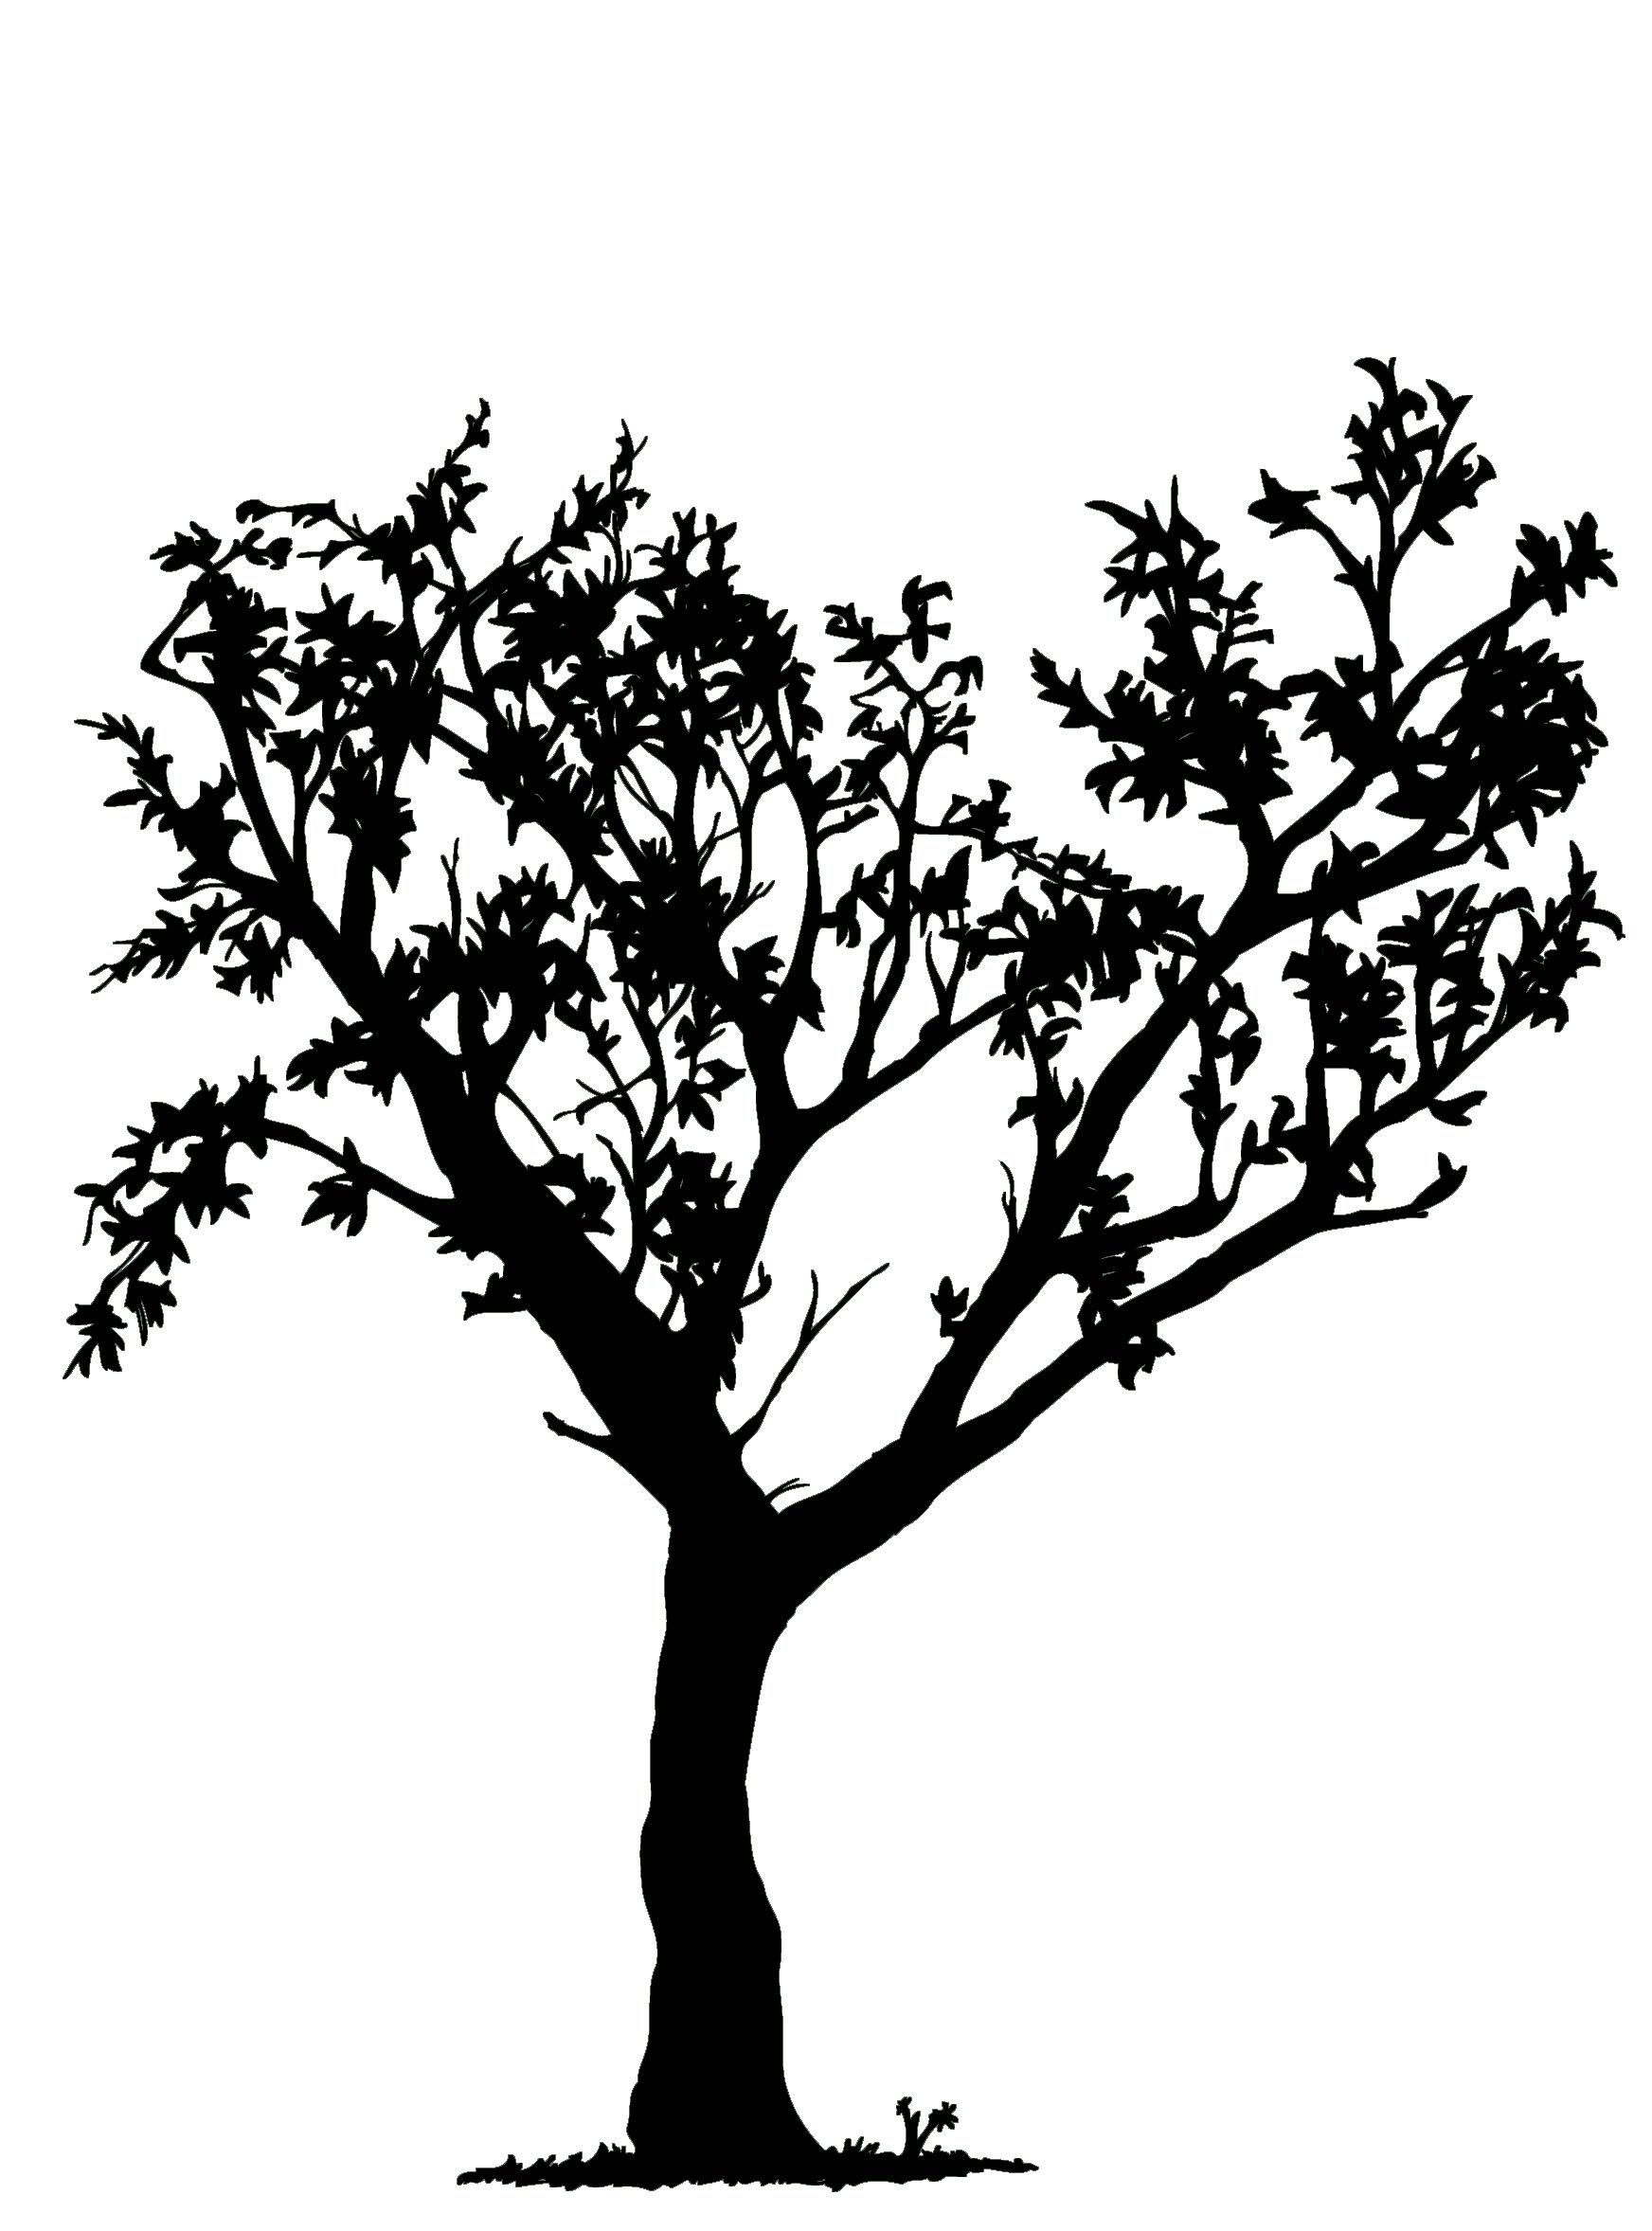 tree image black and white google search tree graphics pinterest google search and. Black Bedroom Furniture Sets. Home Design Ideas